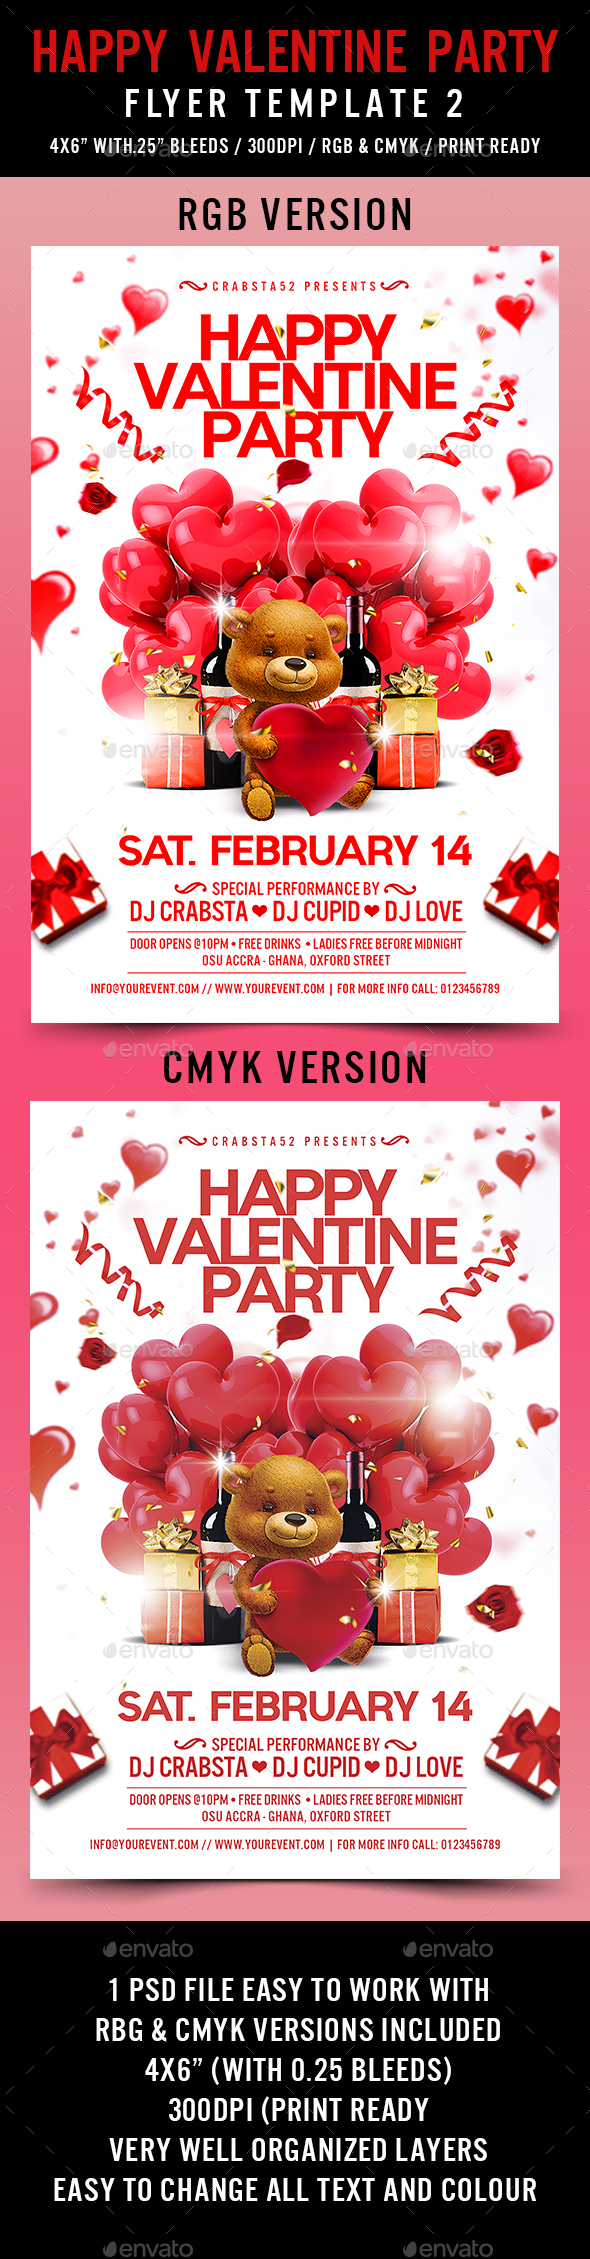 Happy Valentine Party Flyer Template 2 - Flyers Print Templates